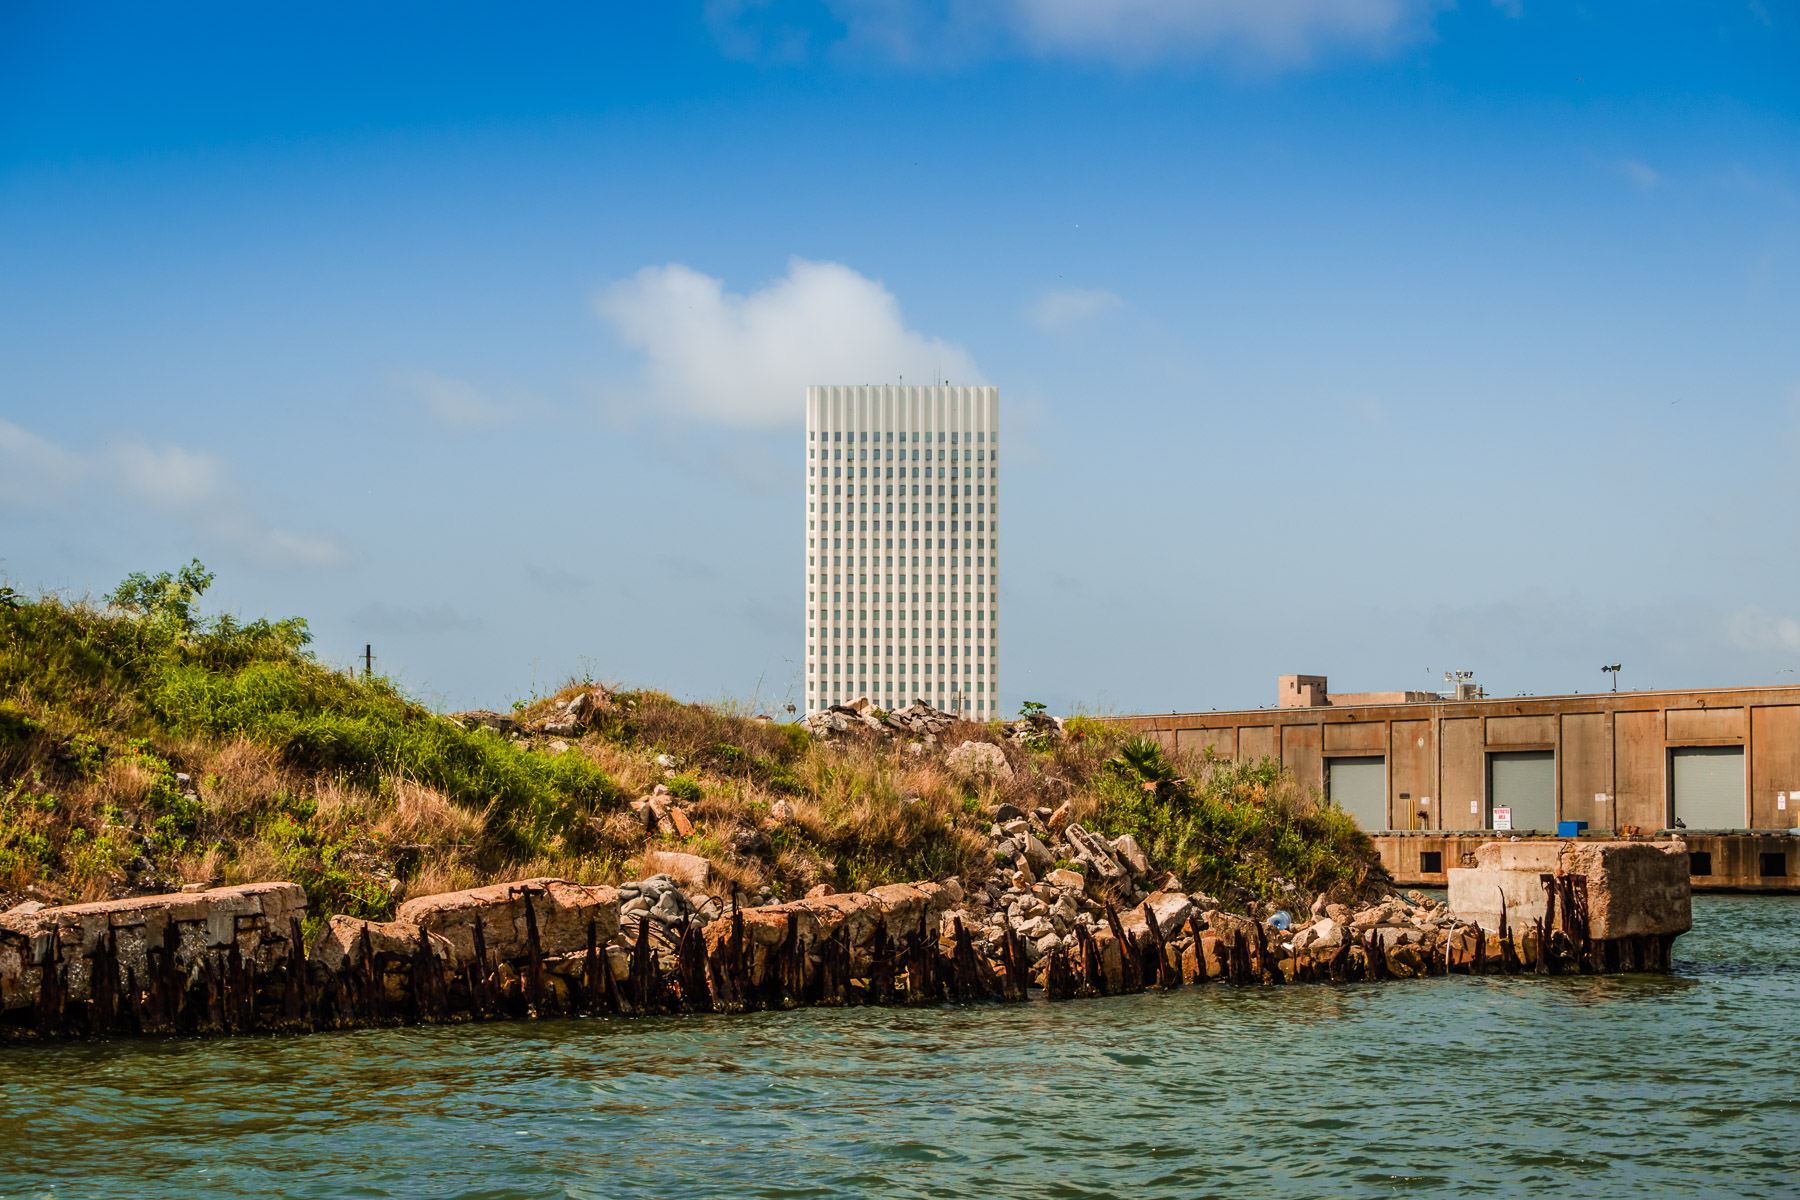 Galveston, Texas' 23-story One Moody Plaza rises into the sky over rubble used as infill on the city's waterfront.